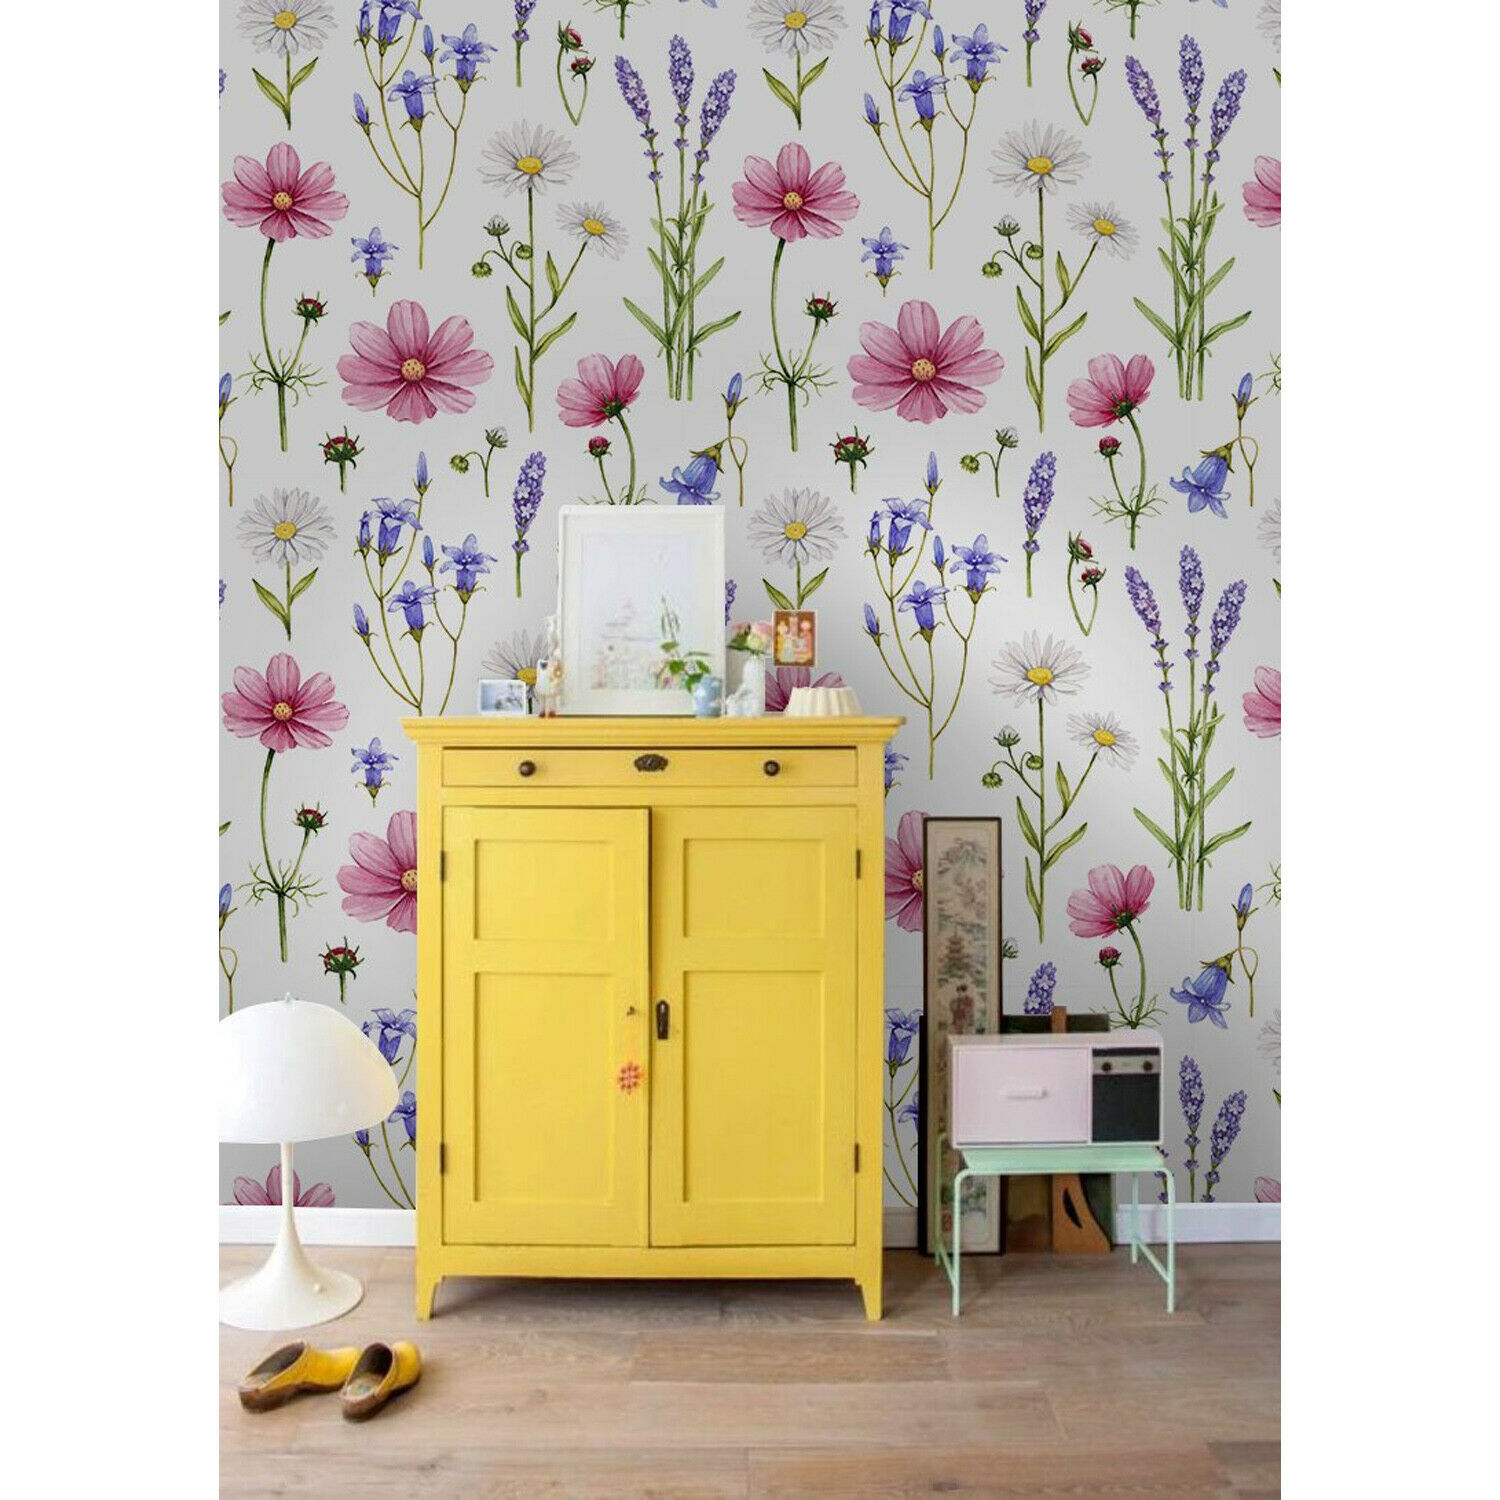 Wildflowers self-adhesive colorful pink and purple wall mural wall covering